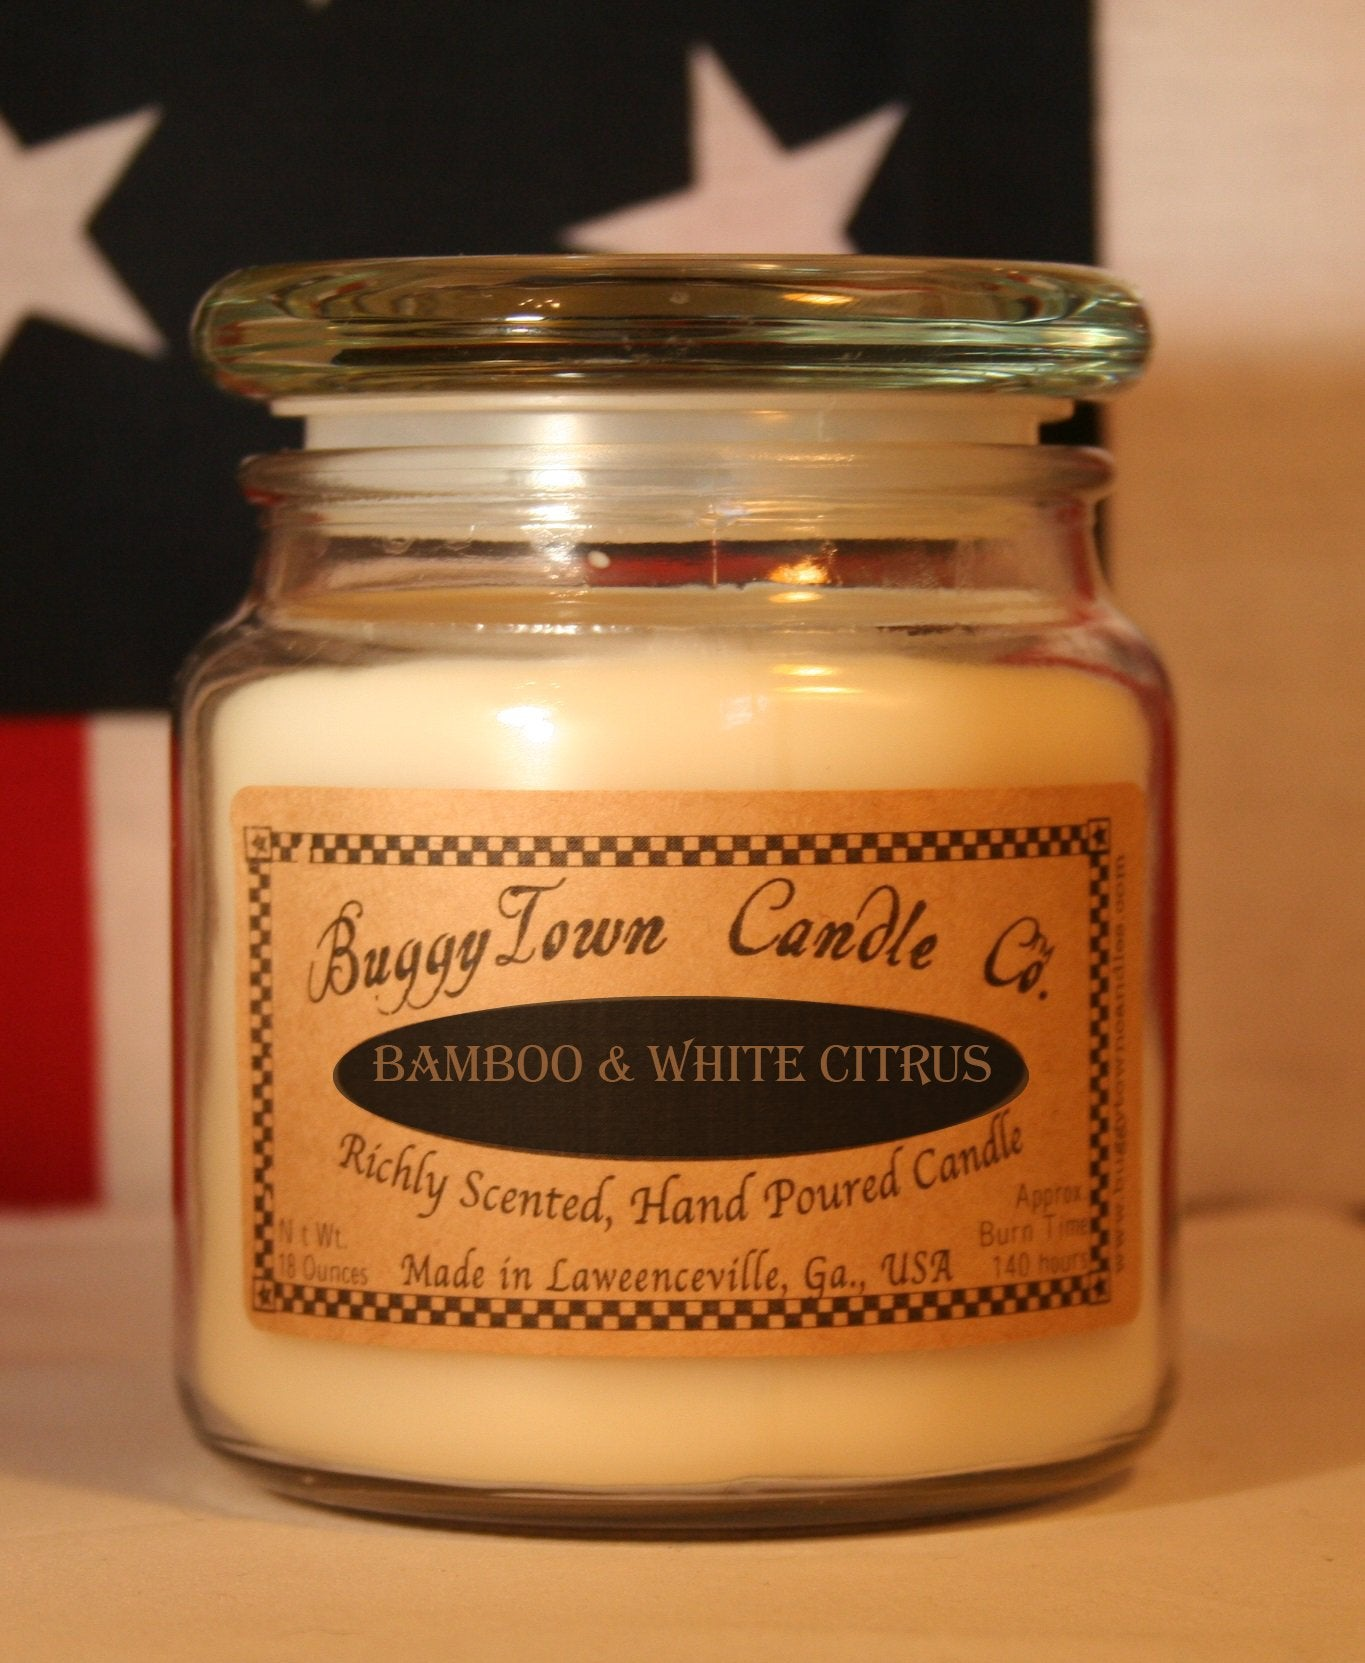 Bamboo & White Citrus Candles